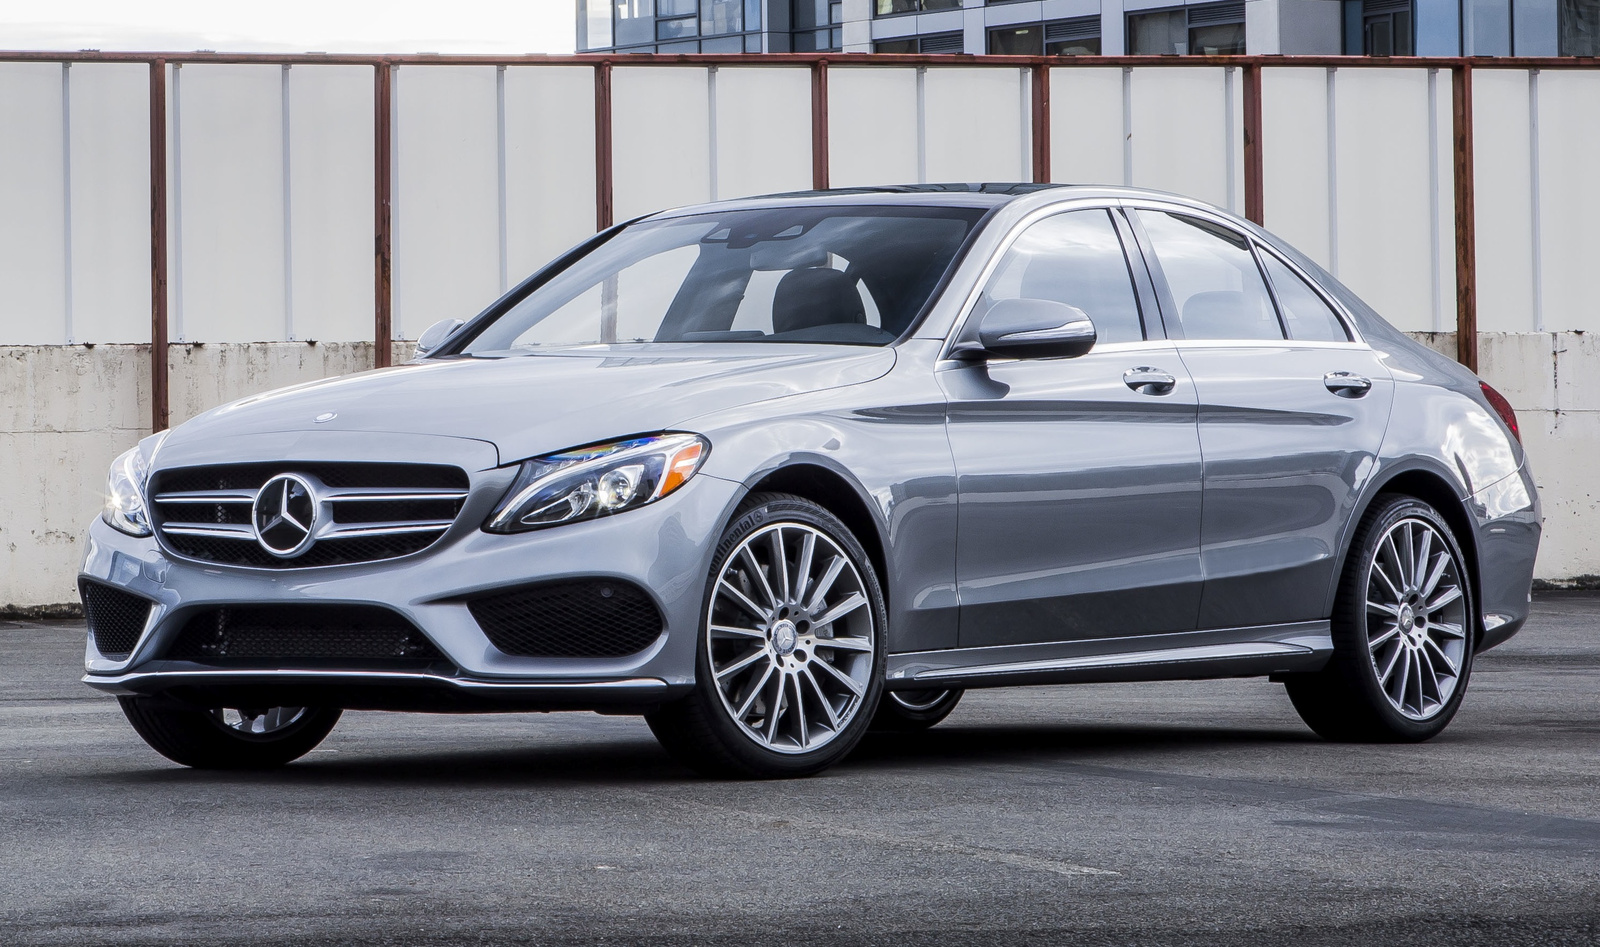 Home / Research / MercedesBenz / CClass / 2015